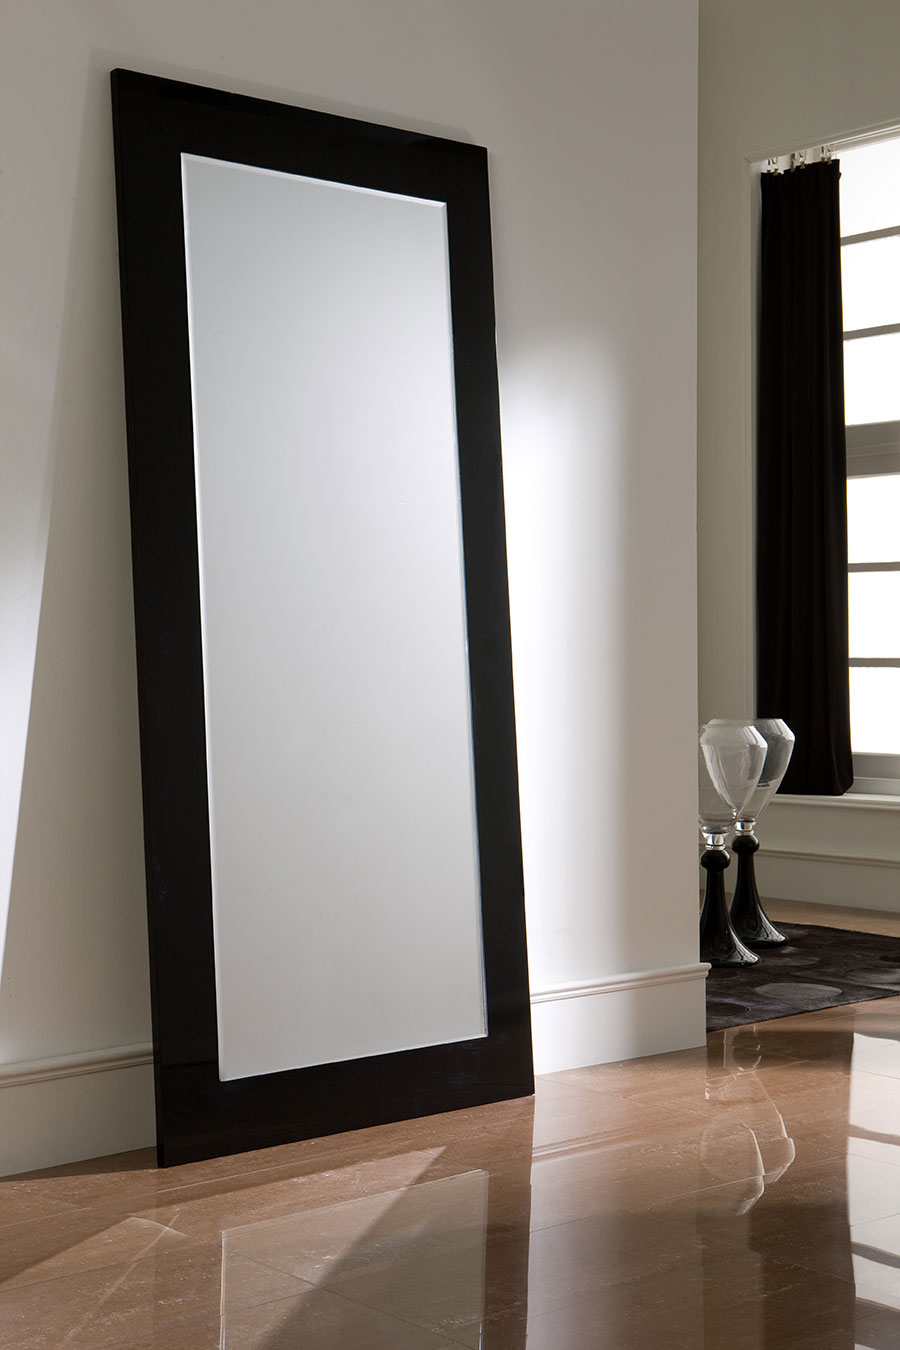 Miroir long blanc id es de d coration int rieure for Des idees de decoration interieure